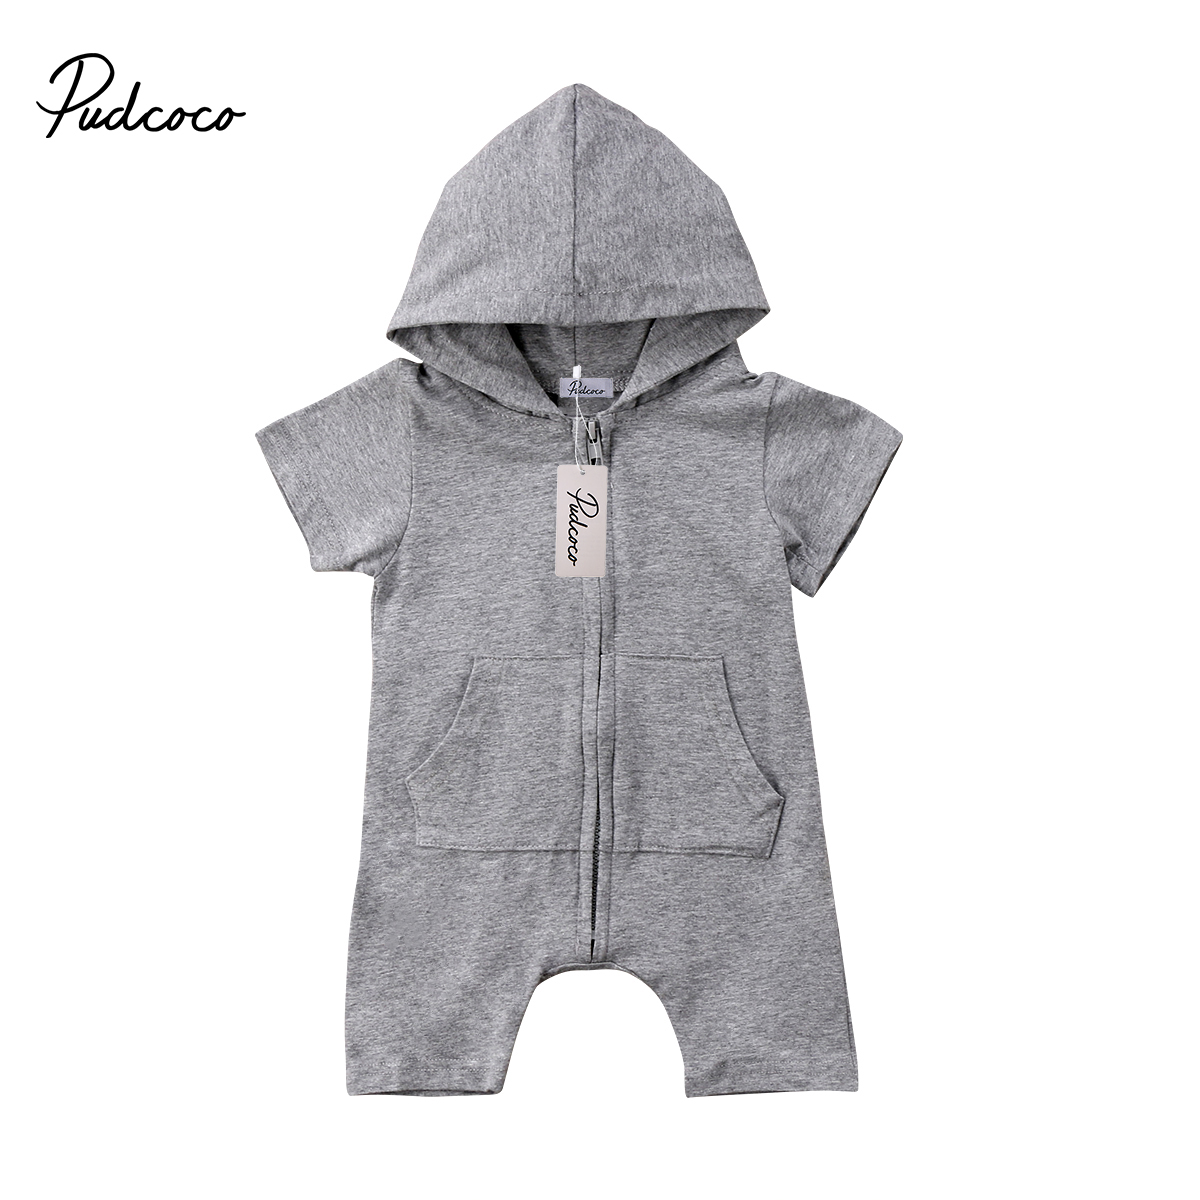 Oudcoco Lovely Kid Infant Baby Boy Girl Unisex Clothes Cotton Short Sleeve Romper Outfit 0-24Months Helen115